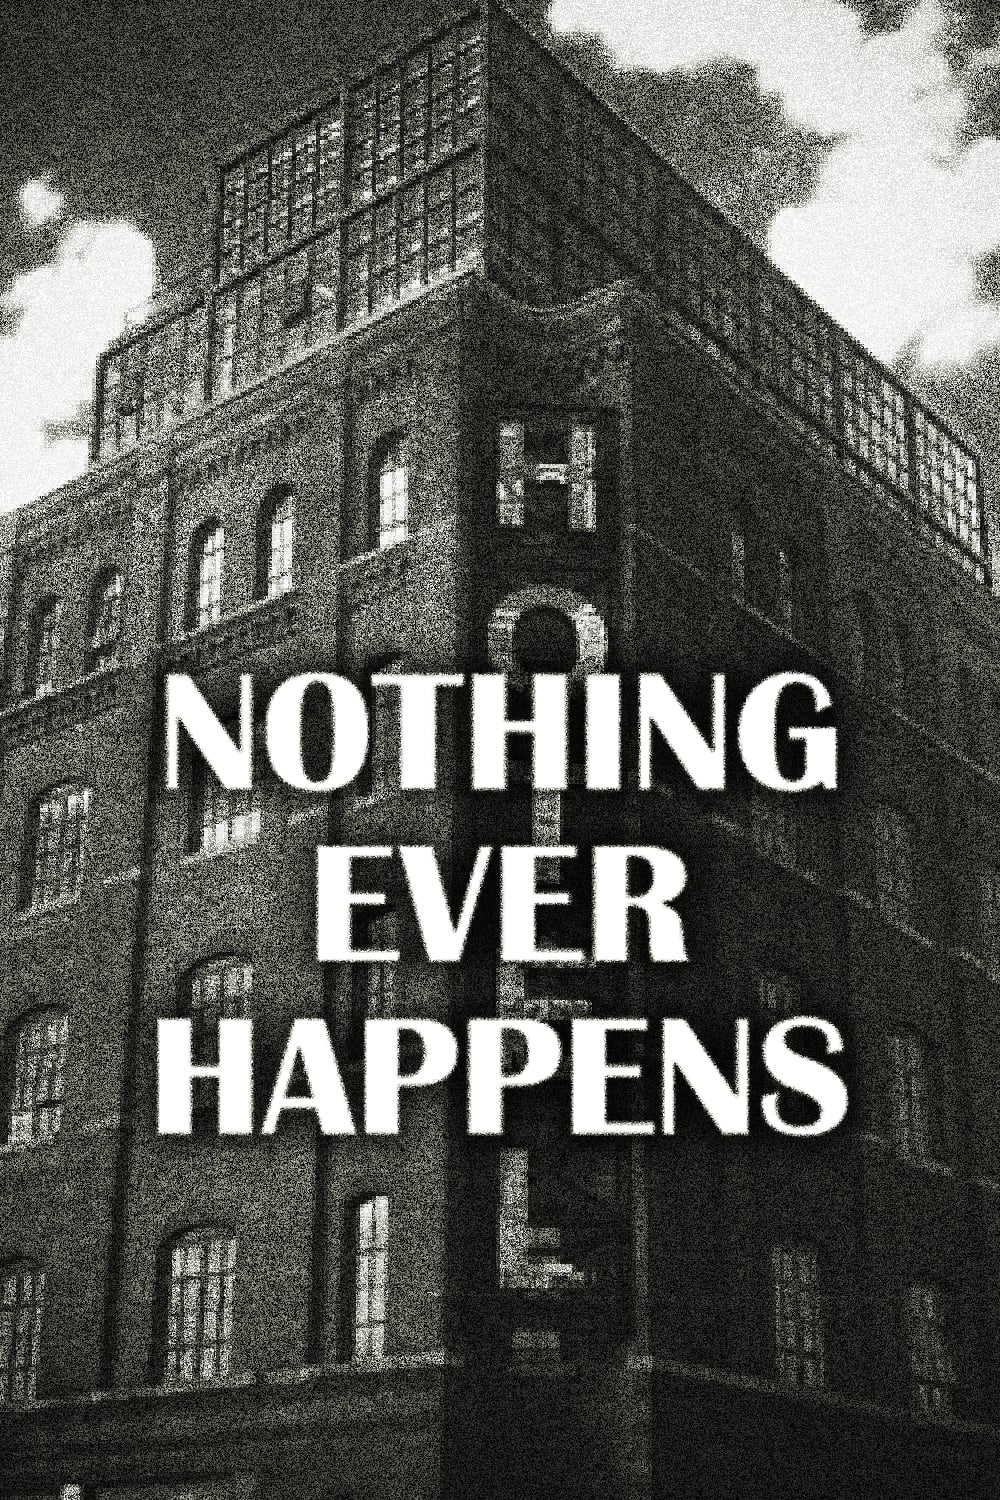 Nothing Ever Happens (1933)